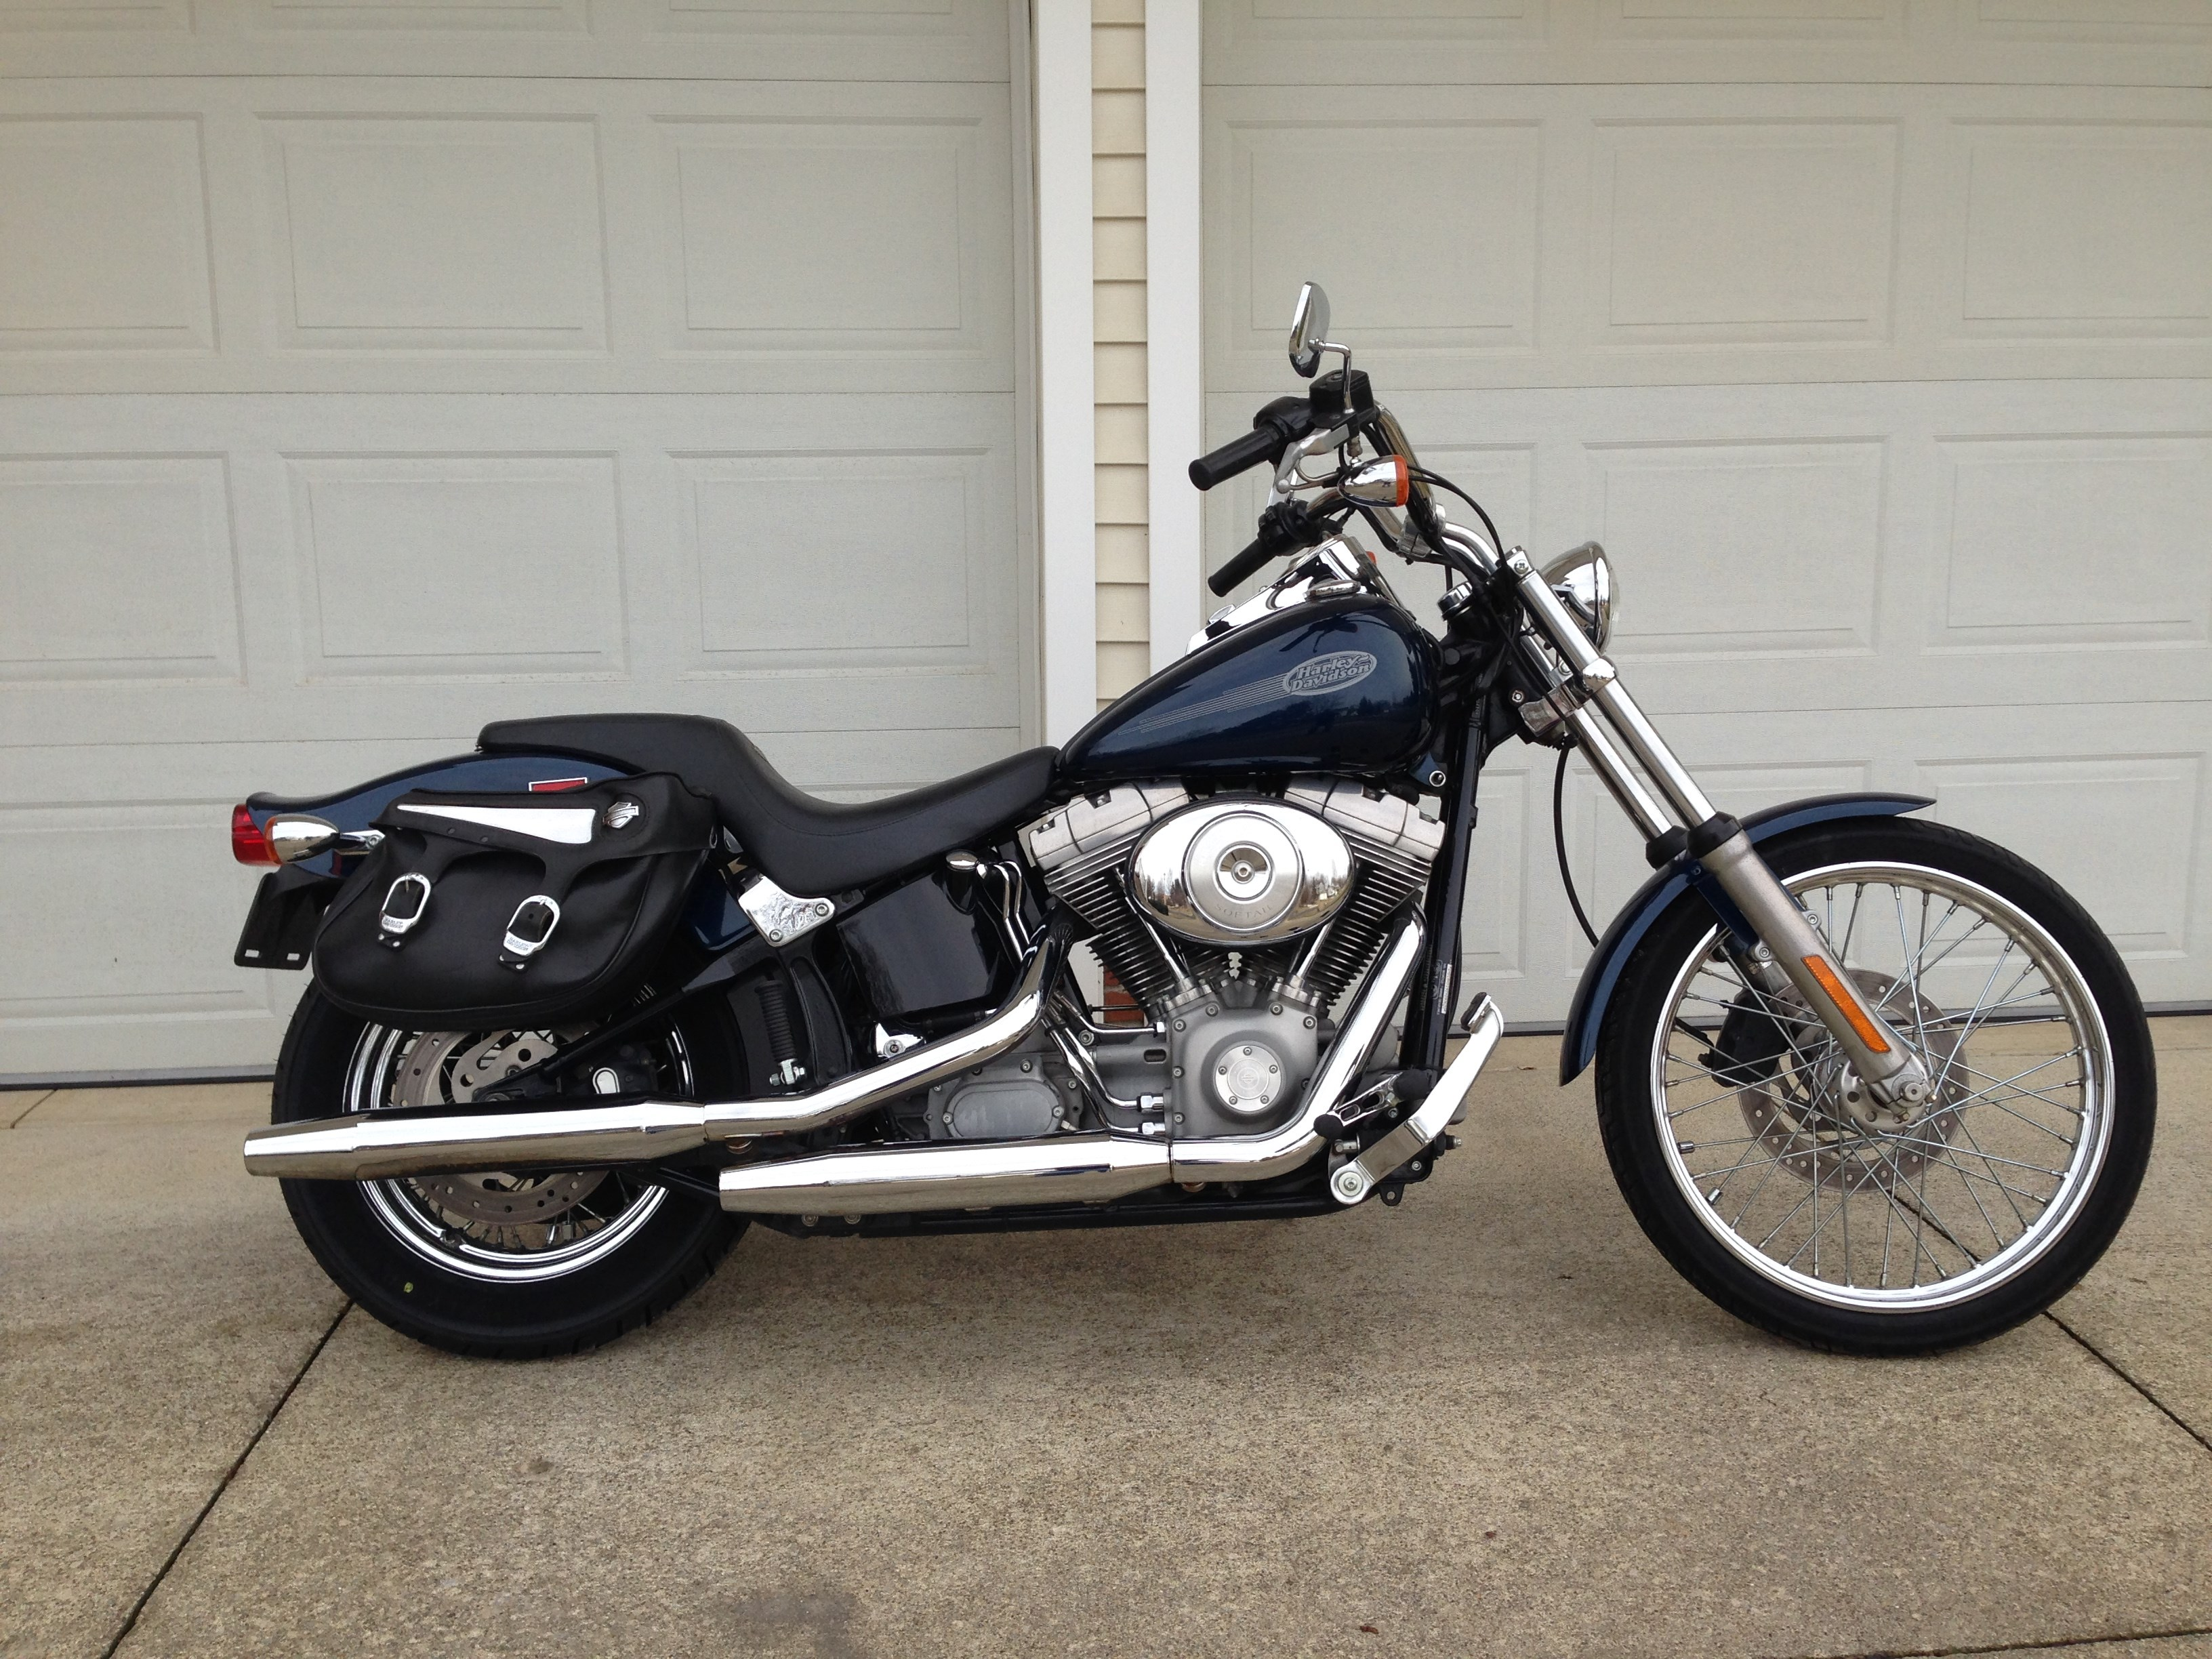 Used Harley Davidson Softail For Sale Nacogdoches Tx >> 2002 Harley-Davidson® FXST/I Softail® Standard (Blue), Orrville, Ohio (648501) | ChopperExchange